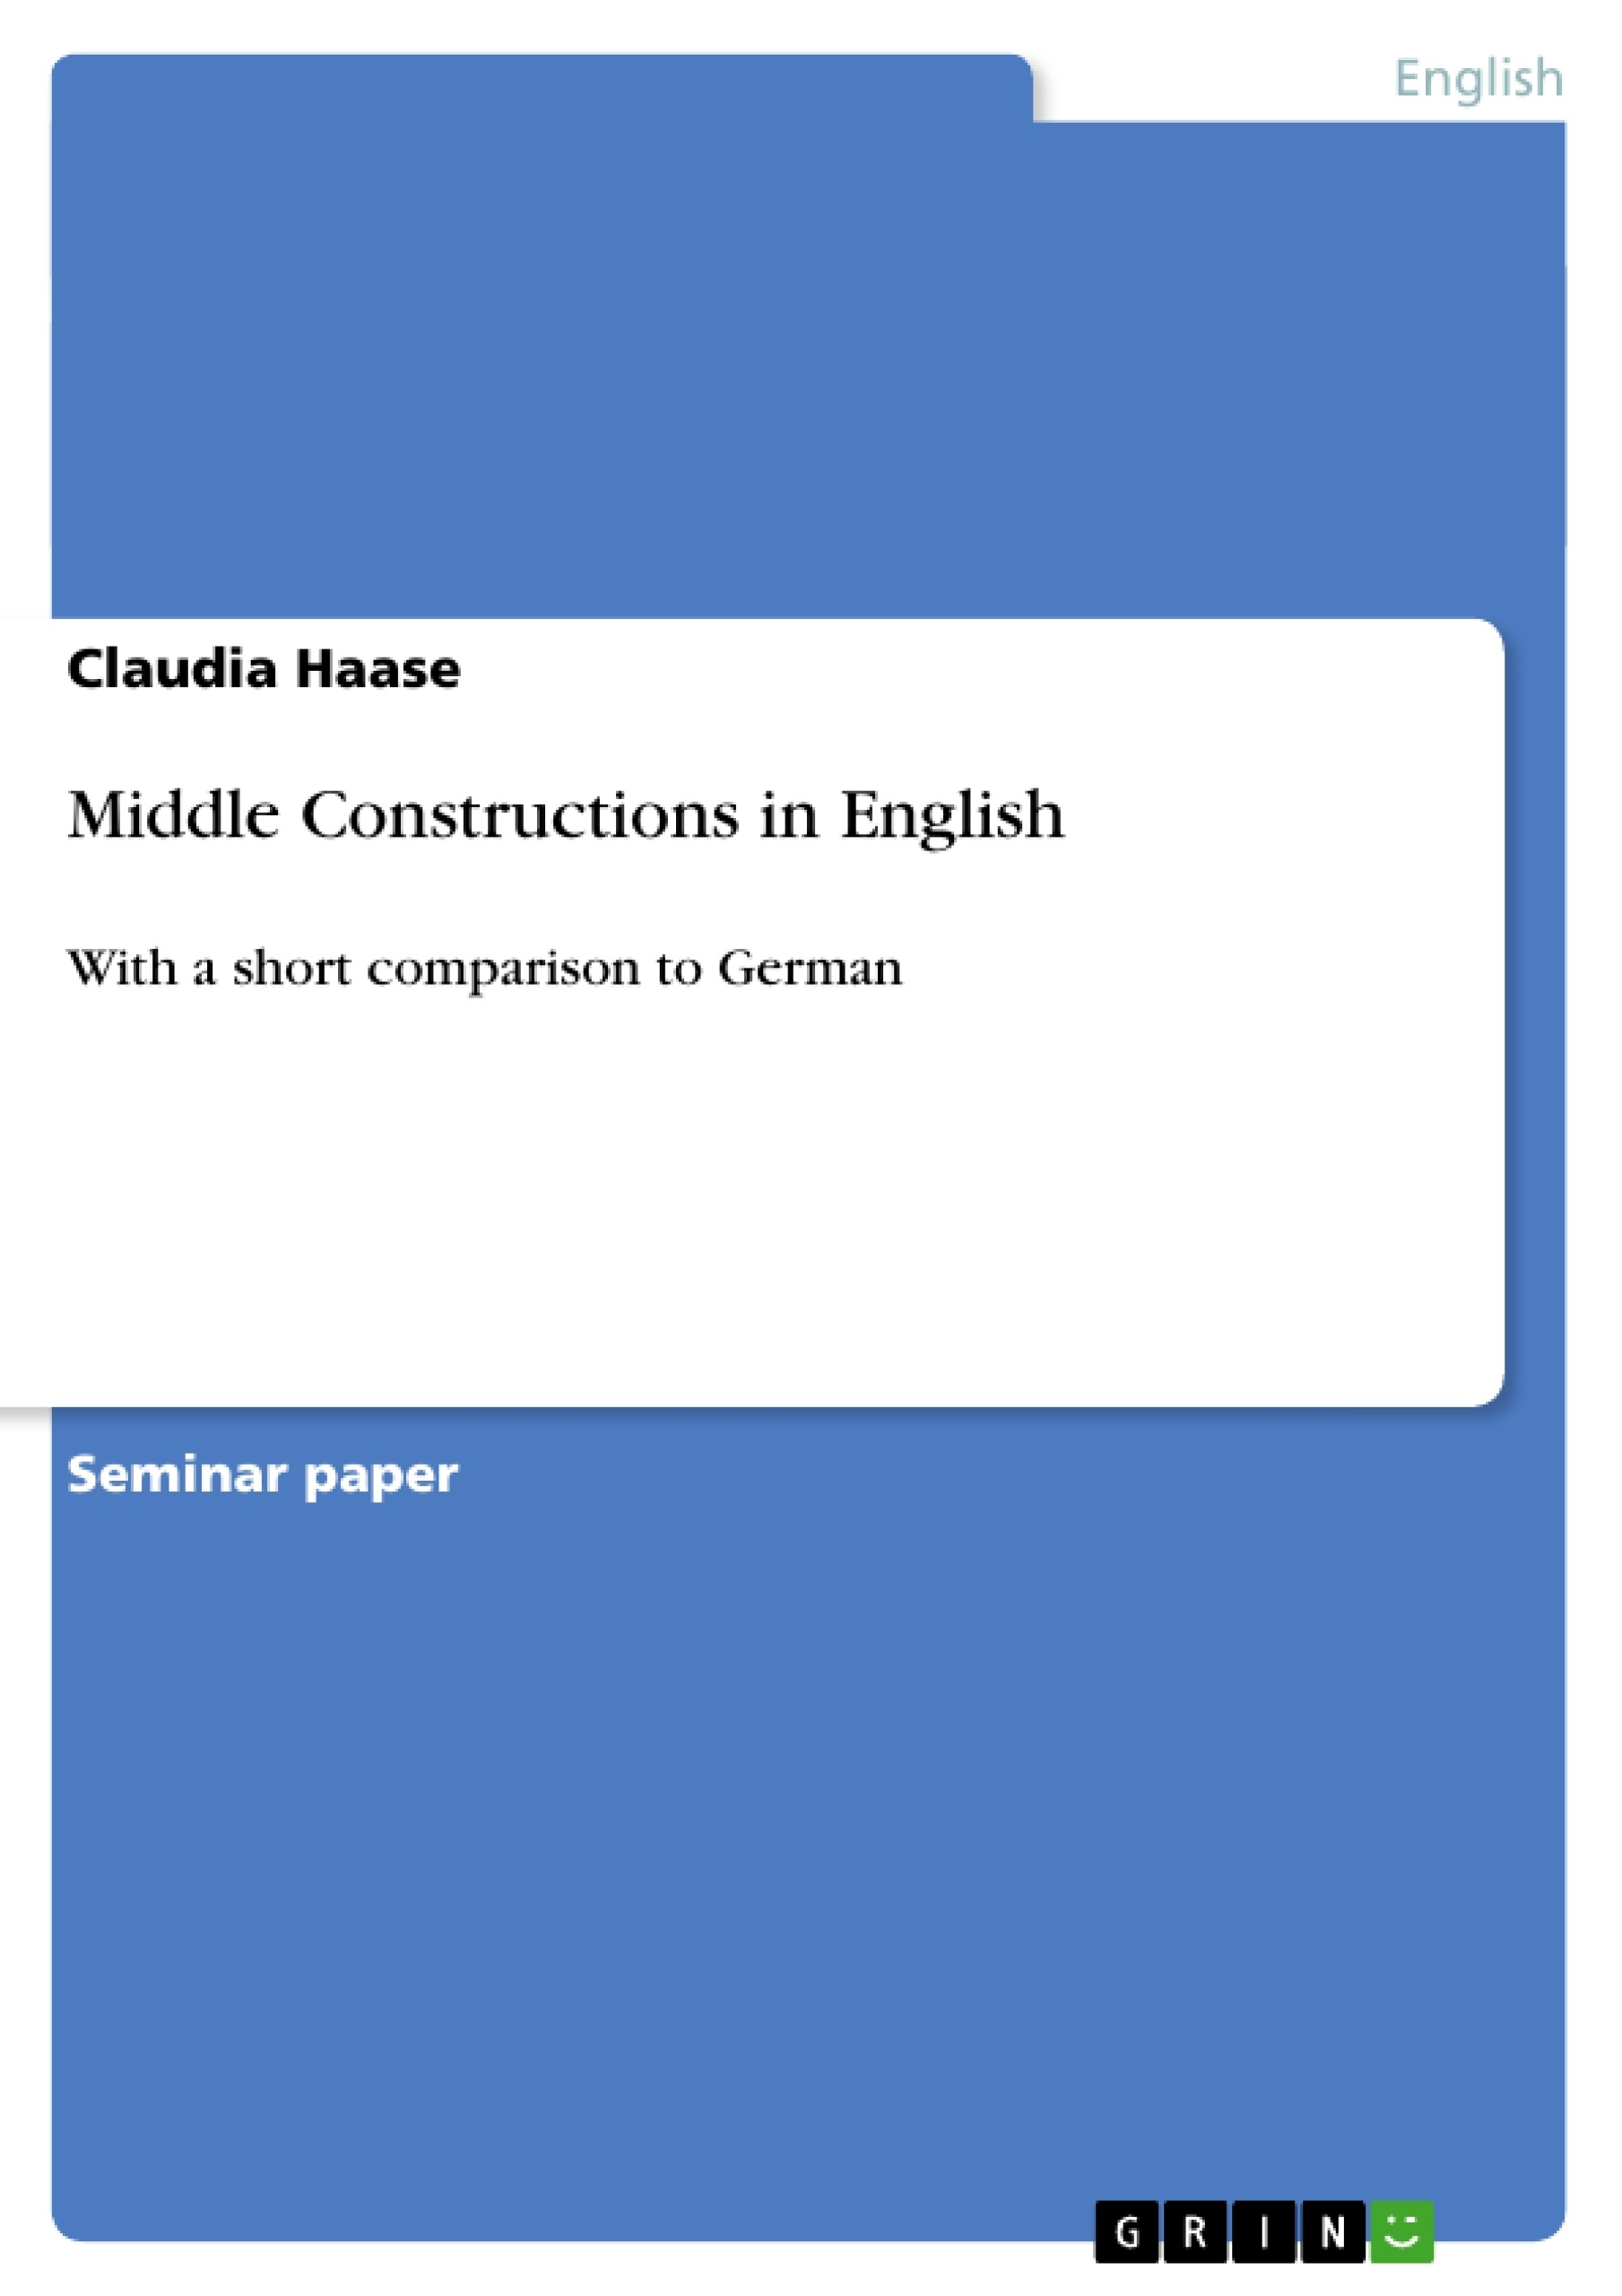 Title: Middle Constructions in English